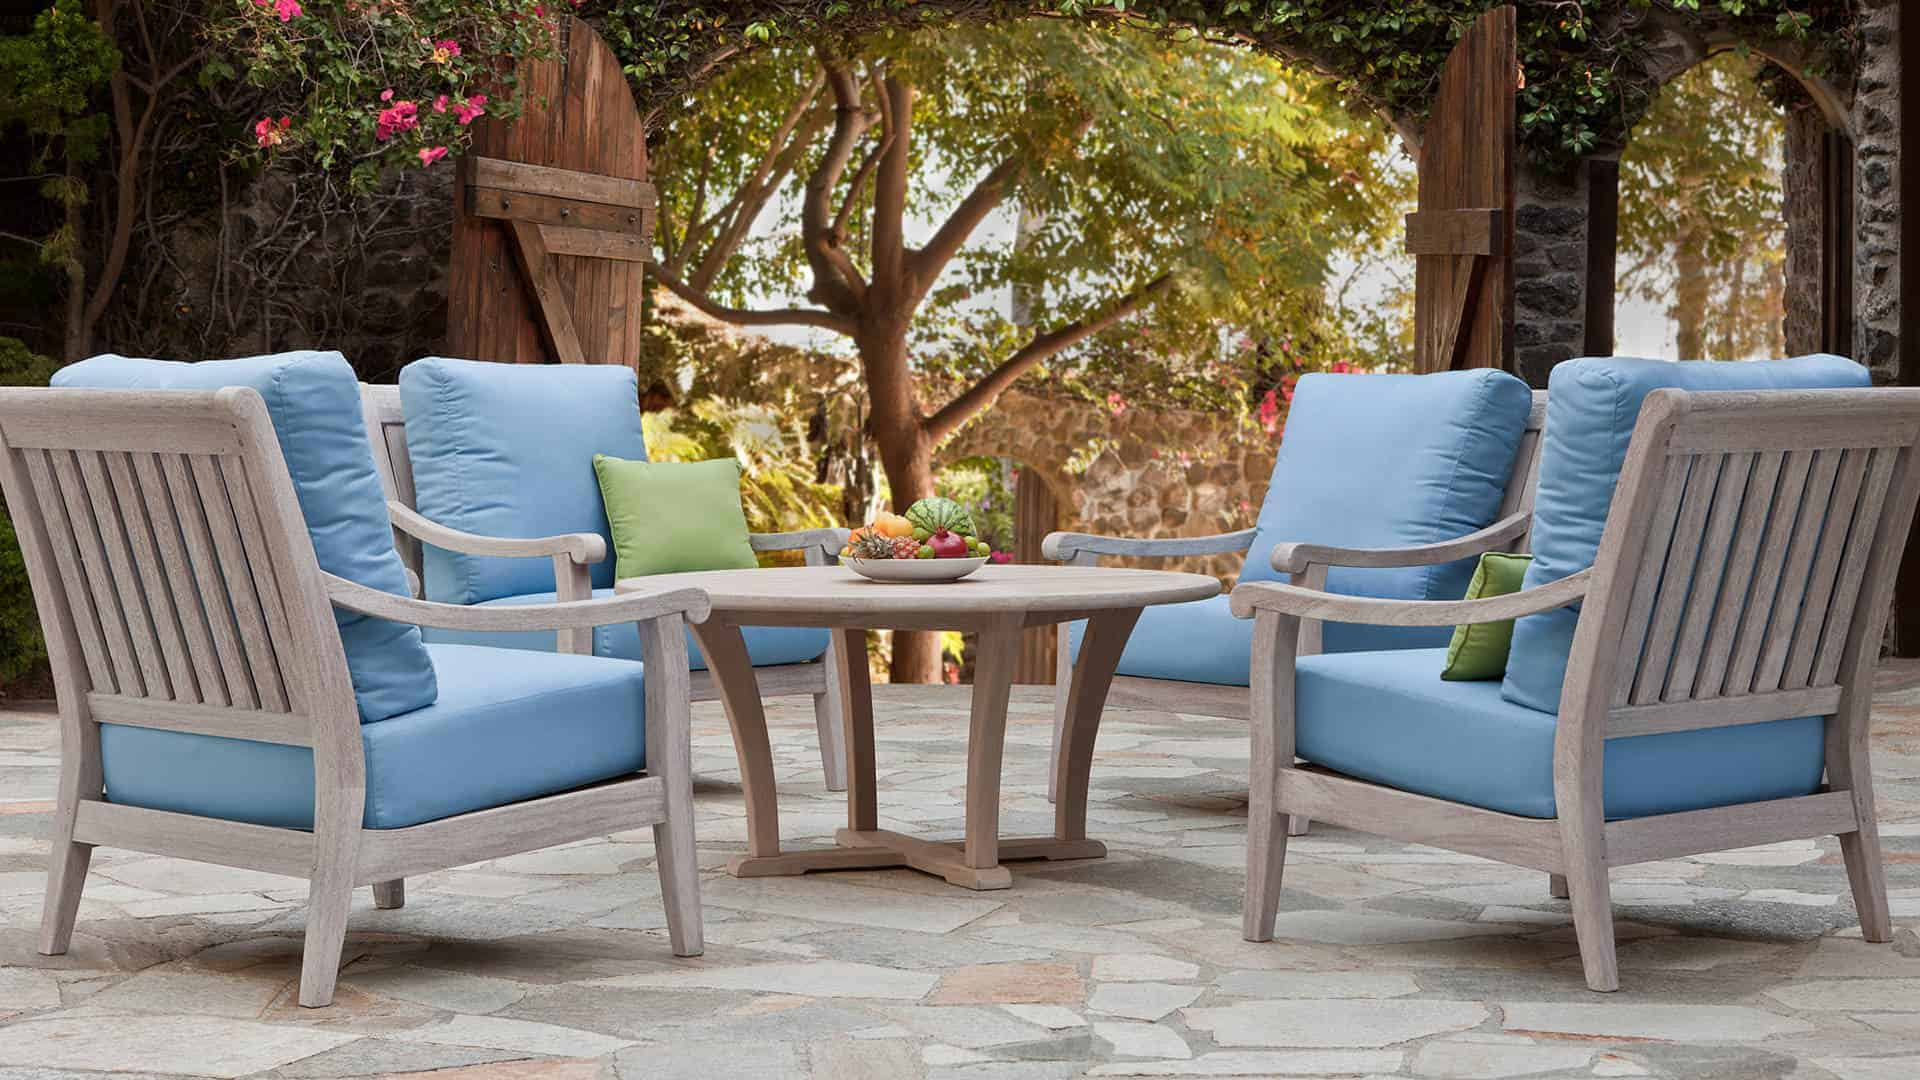 Commercial Outdoor Furniture Quality Contract Garden Furniture - Commercial outdoor table and chairs